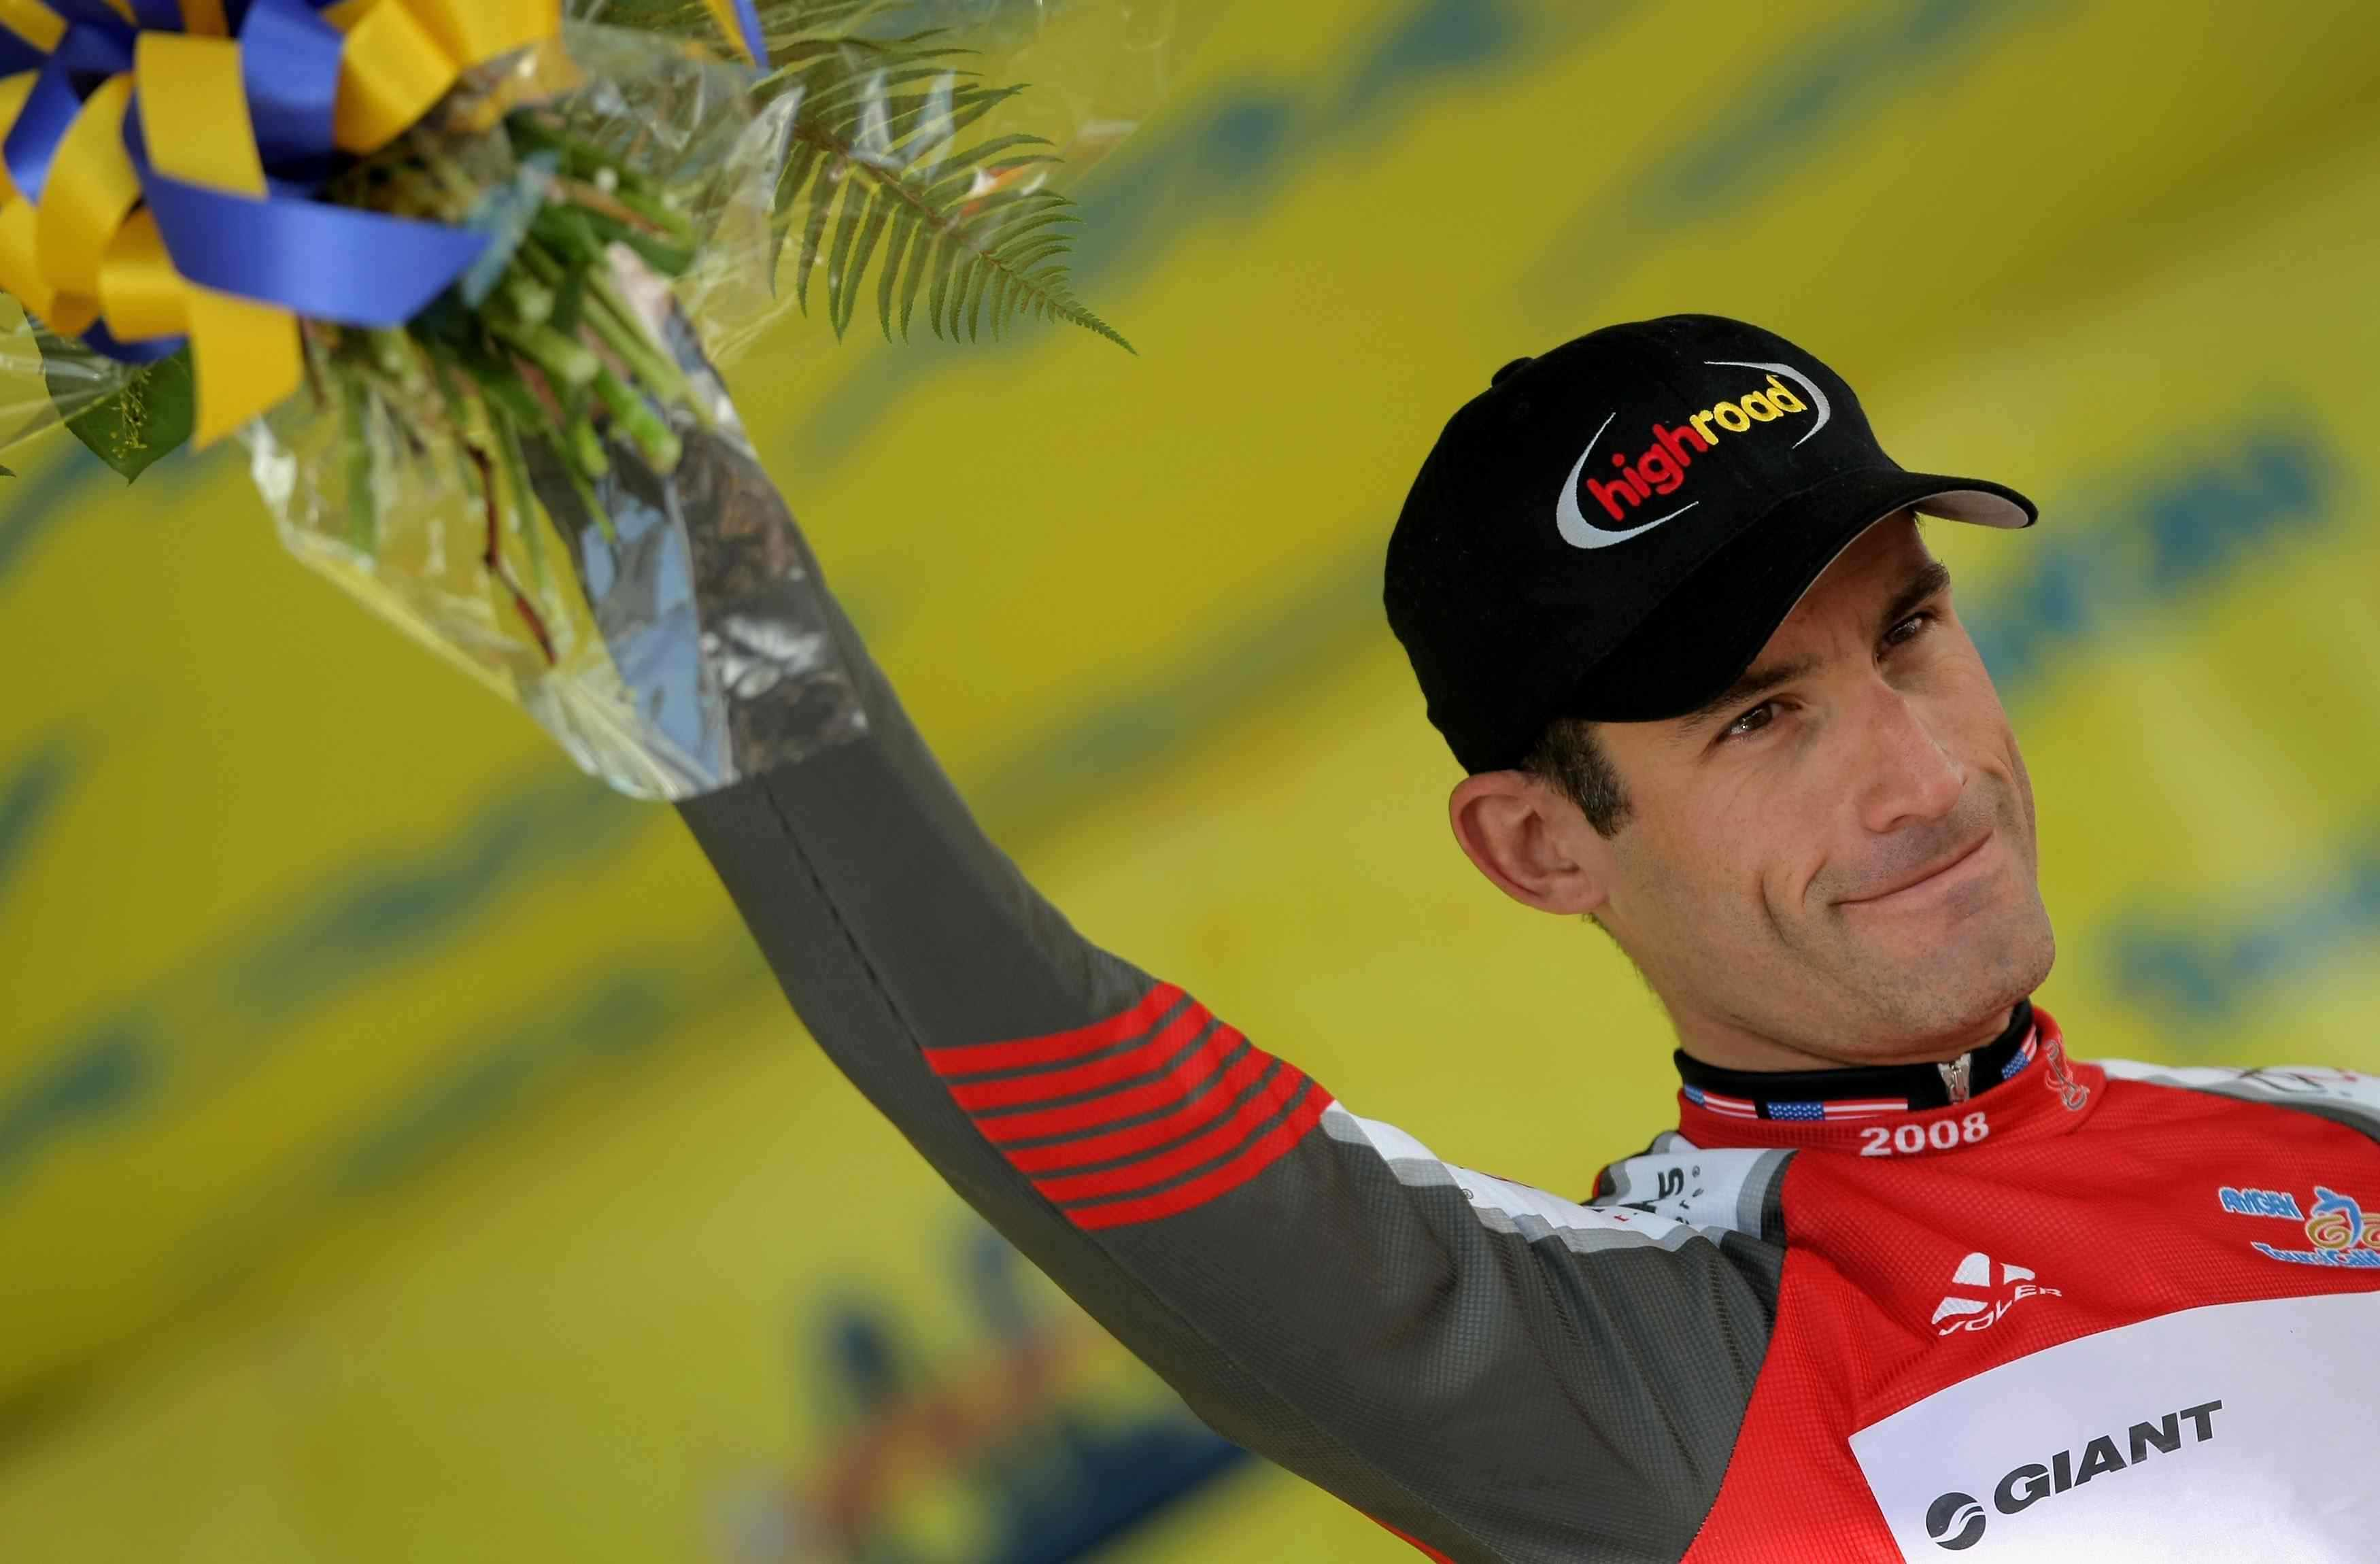 Will George Hincapie be wearing a Hincapie-made jersey in California next February?